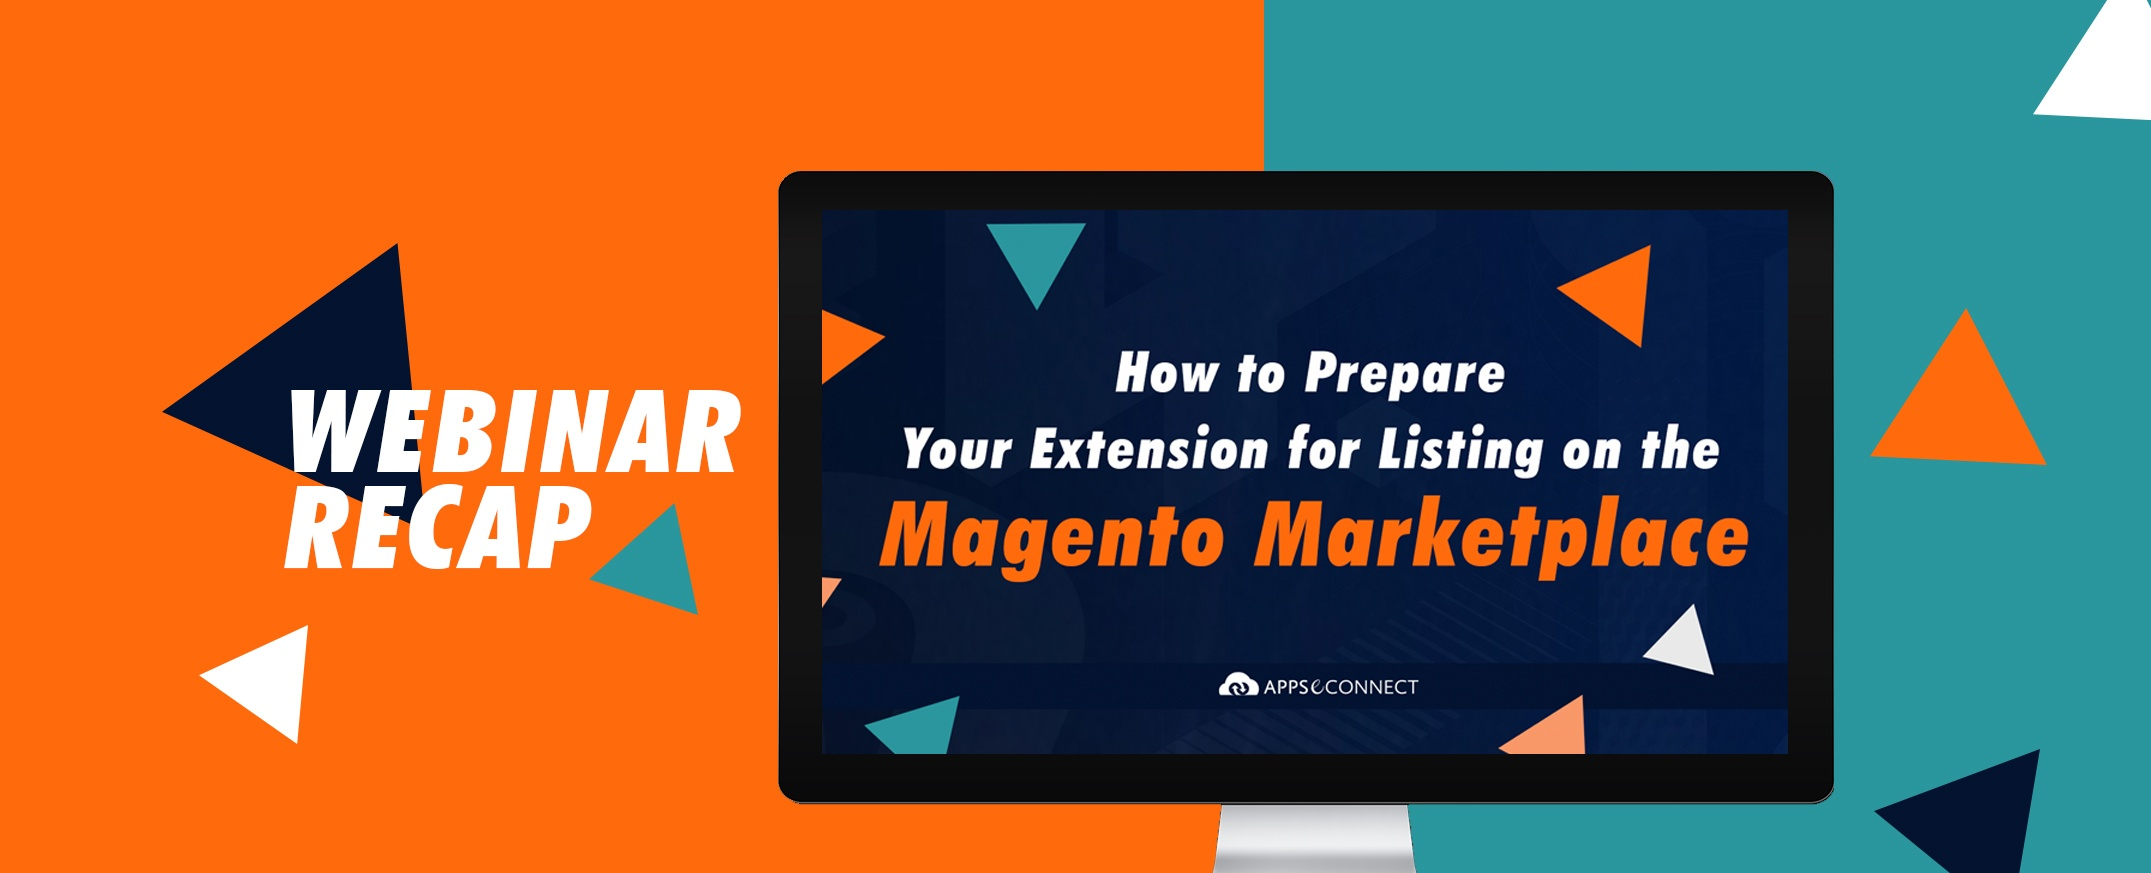 Webinar-How-to-Prepare-your-Magento-Extension-for-Listing-on-the-Magento-Marketplace